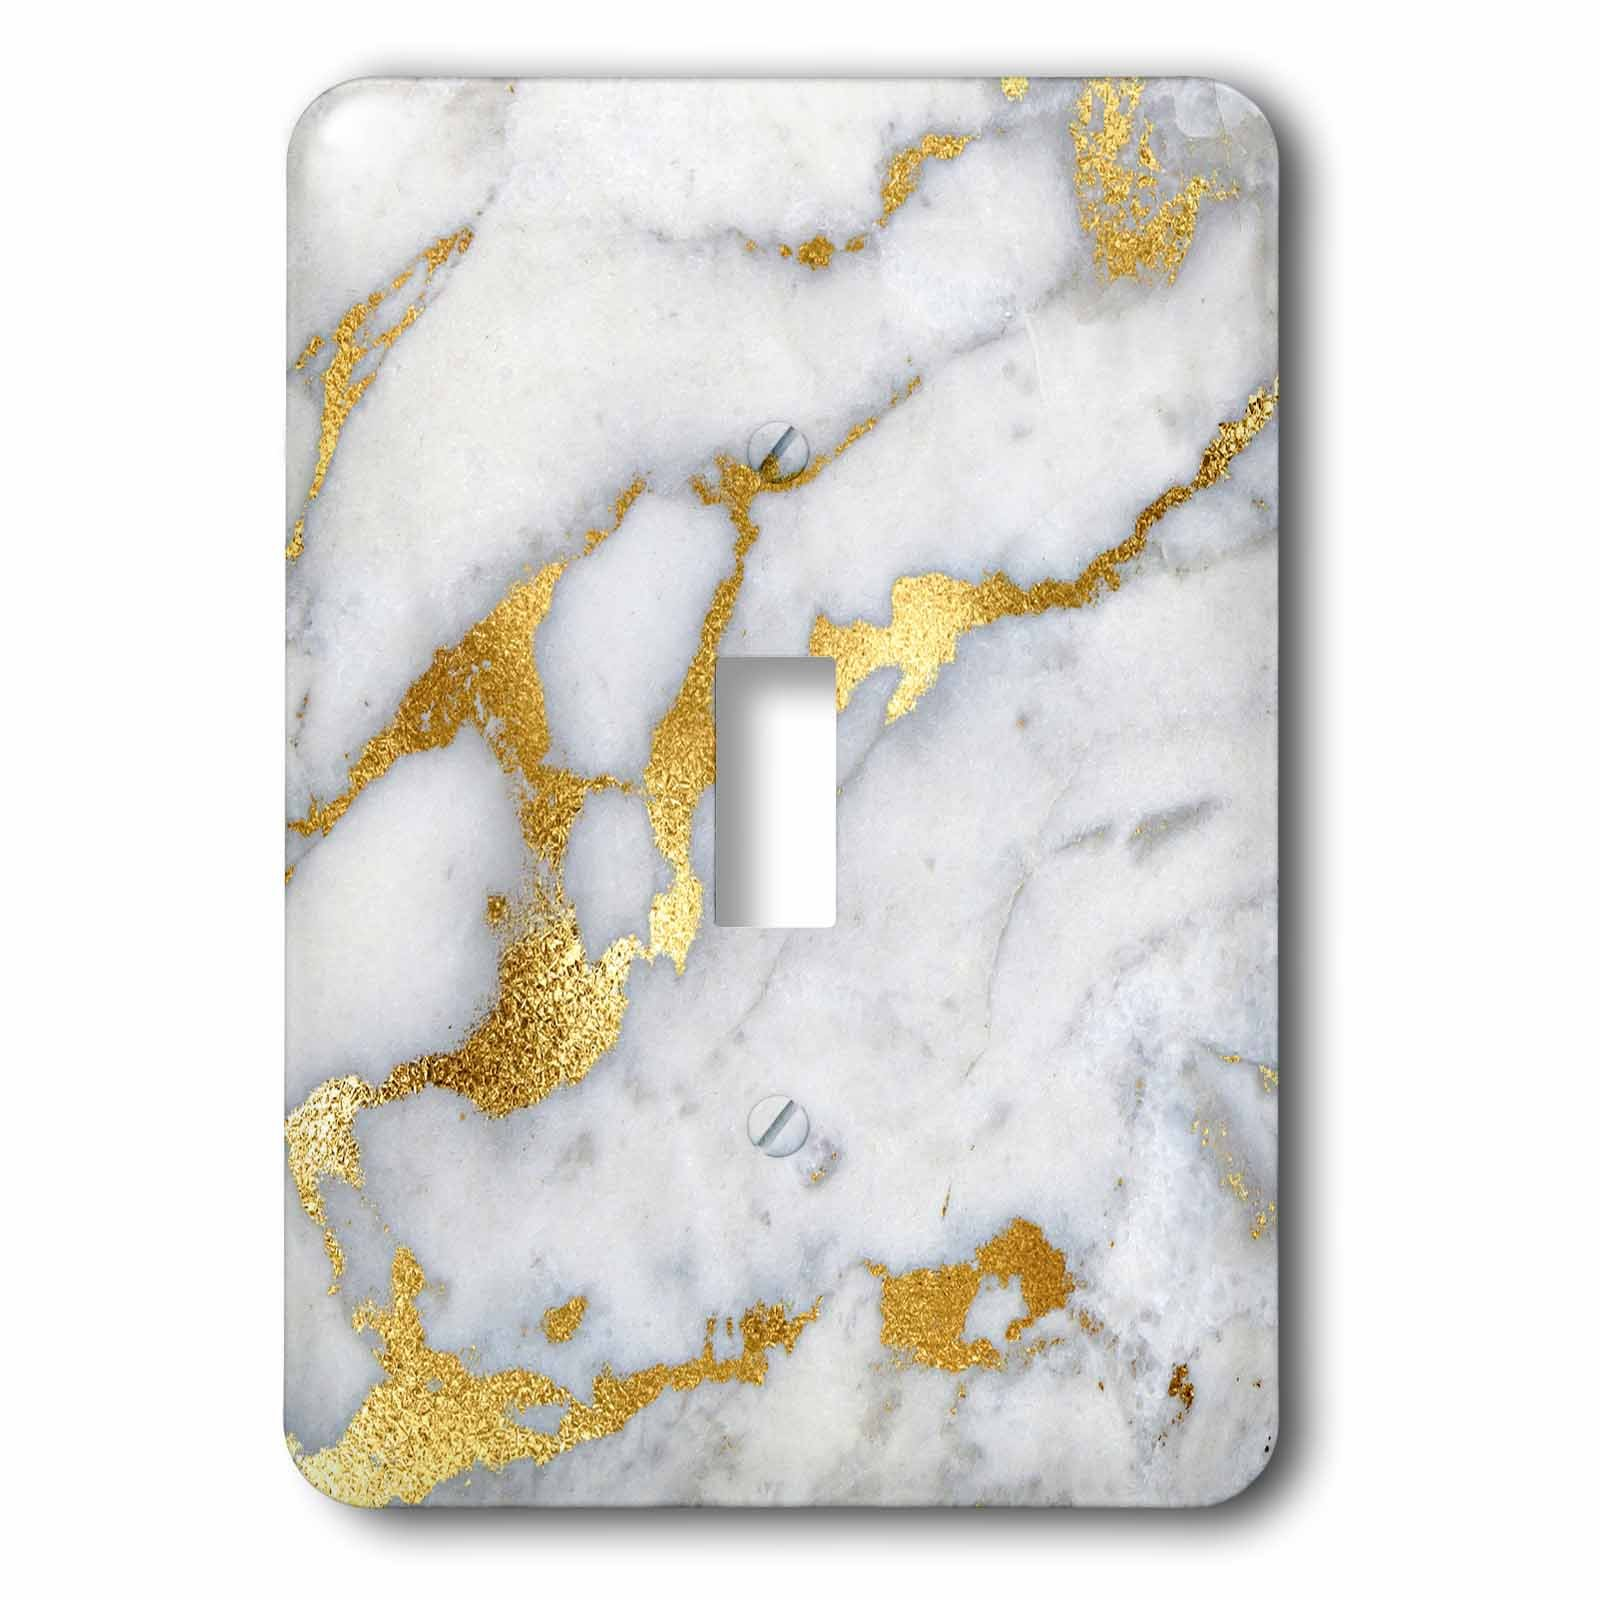 3dRose (lsp_268835_1) Single Toggle Switch (1) Luxury Grey Gold Gem Stone Marble Glitter Metallic Faux Print